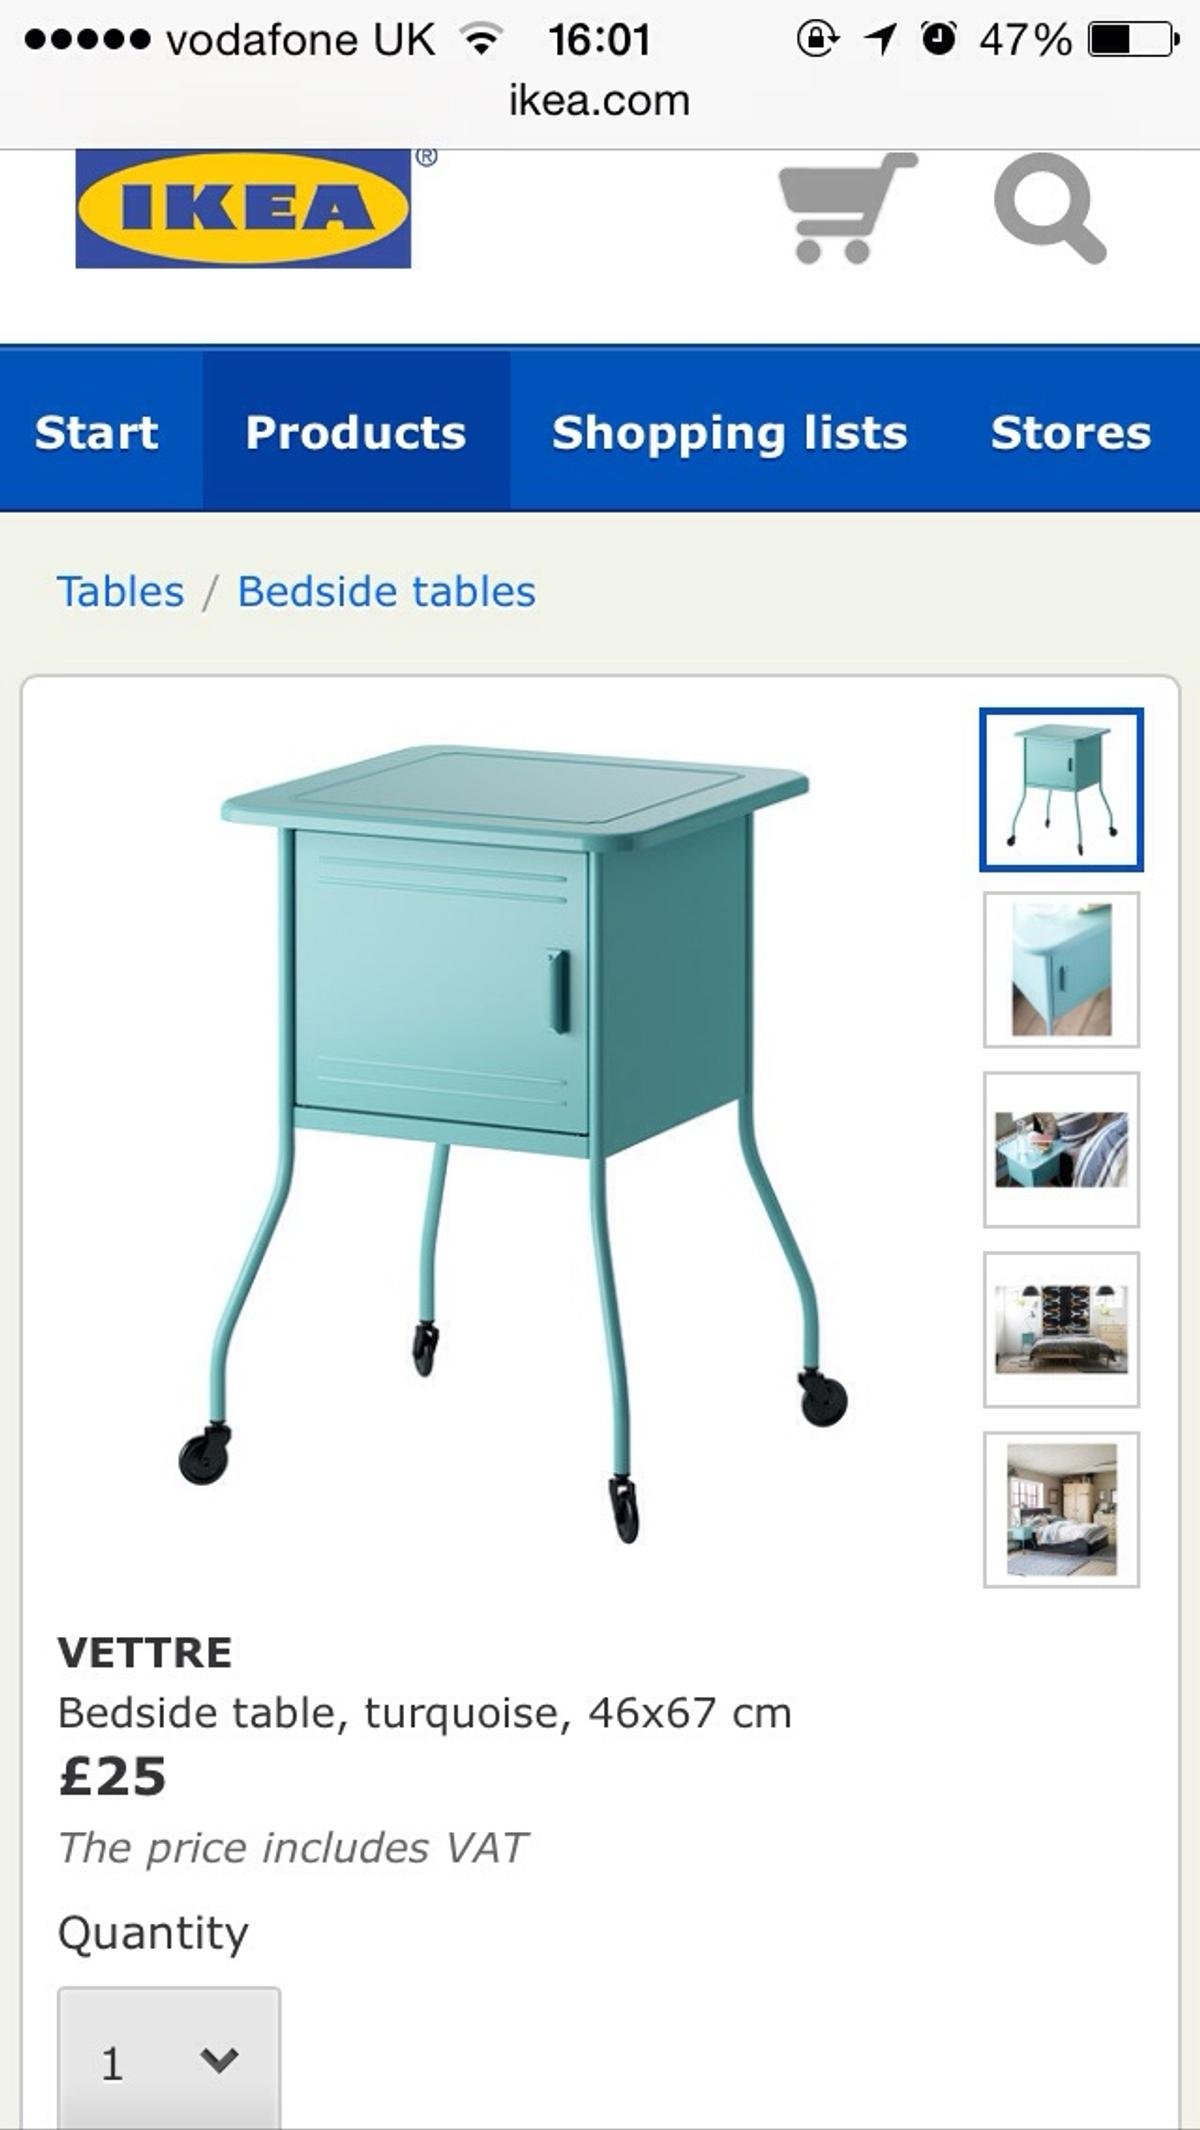 For Funky Chic Bedside Tables From The Ikea Vettre Range